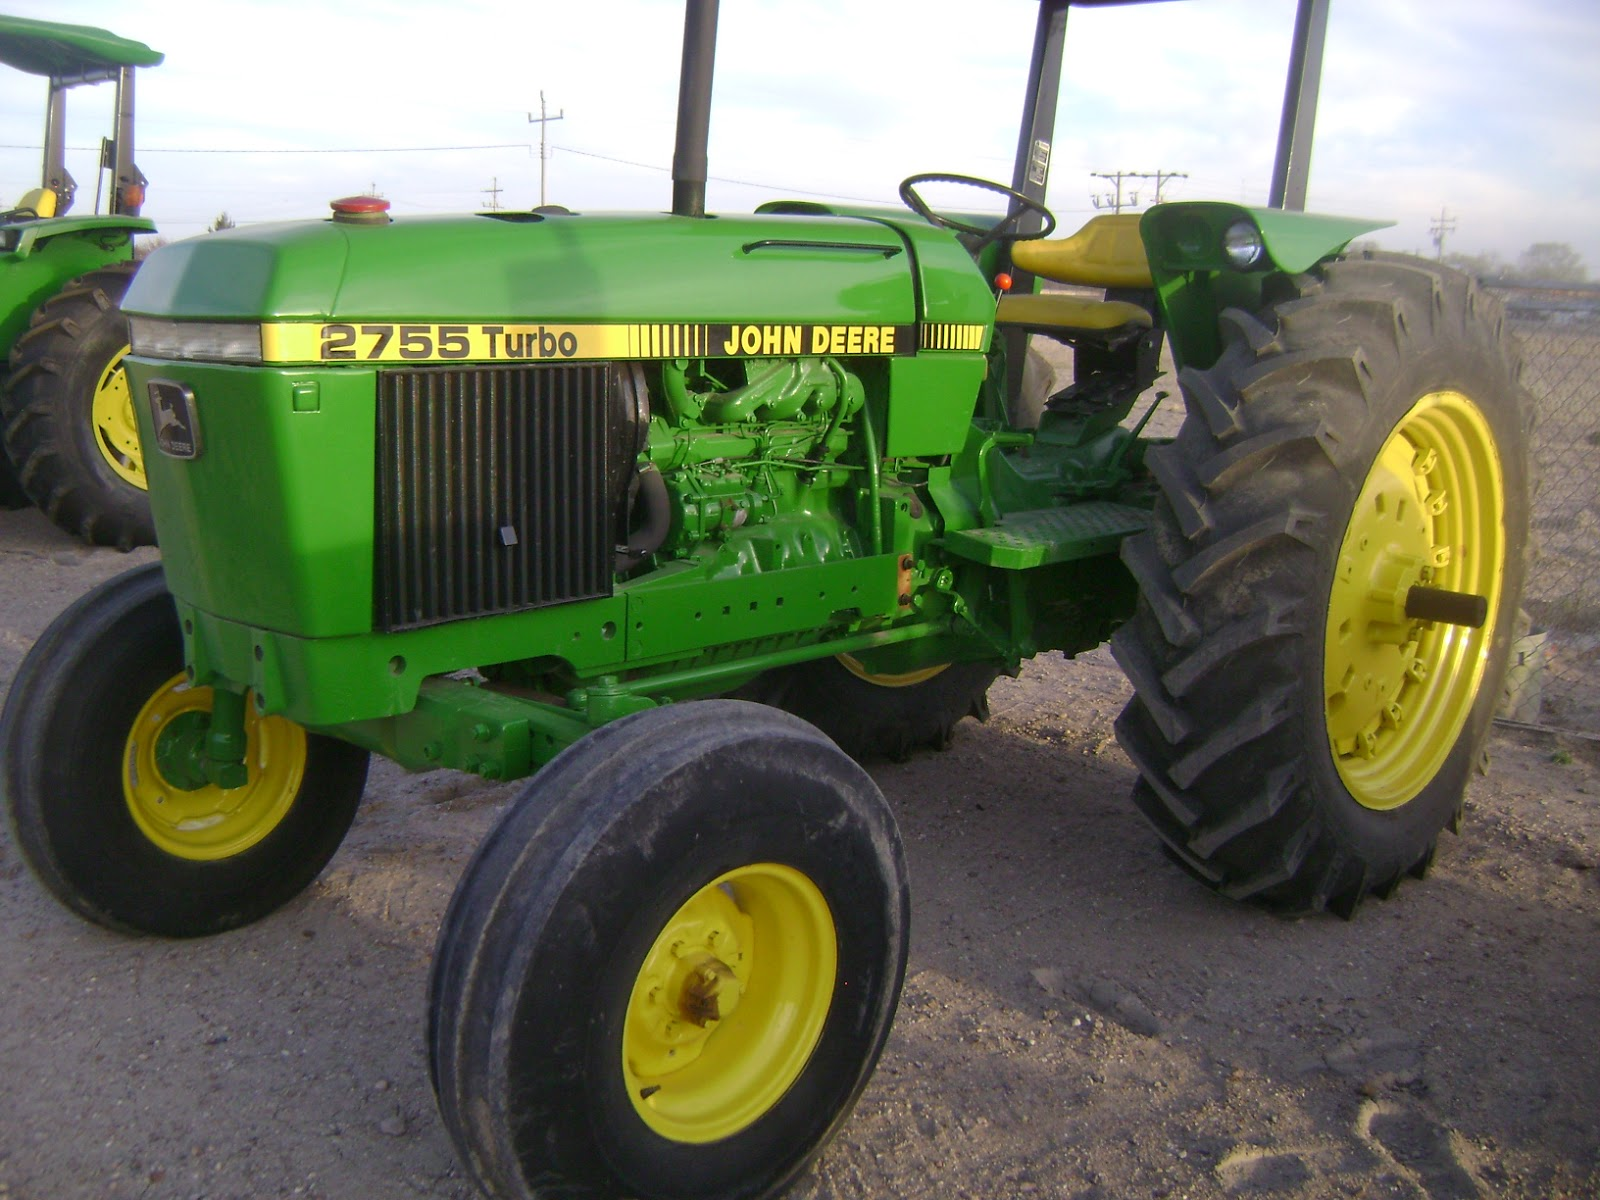 Maquinaria Agricola Industrial  Tractor John Deere 2755 Turbo  17 000 Dlls